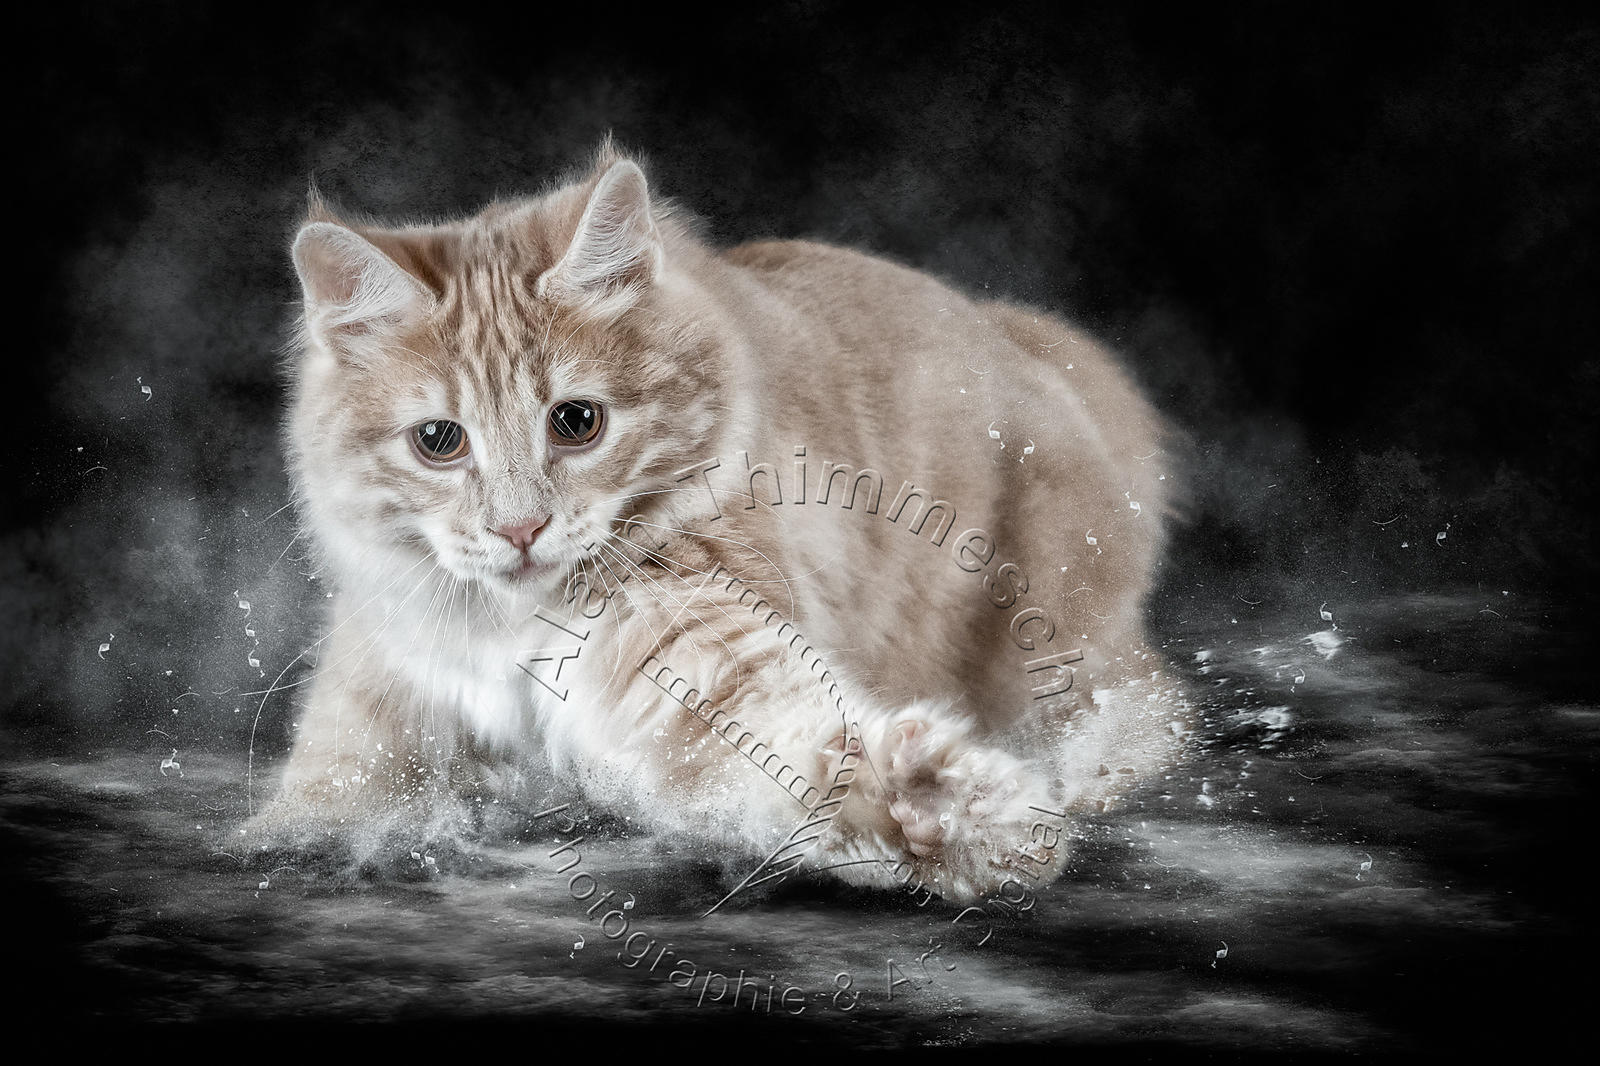 Art-Digital-Alain-Thimmesch-Chat-118